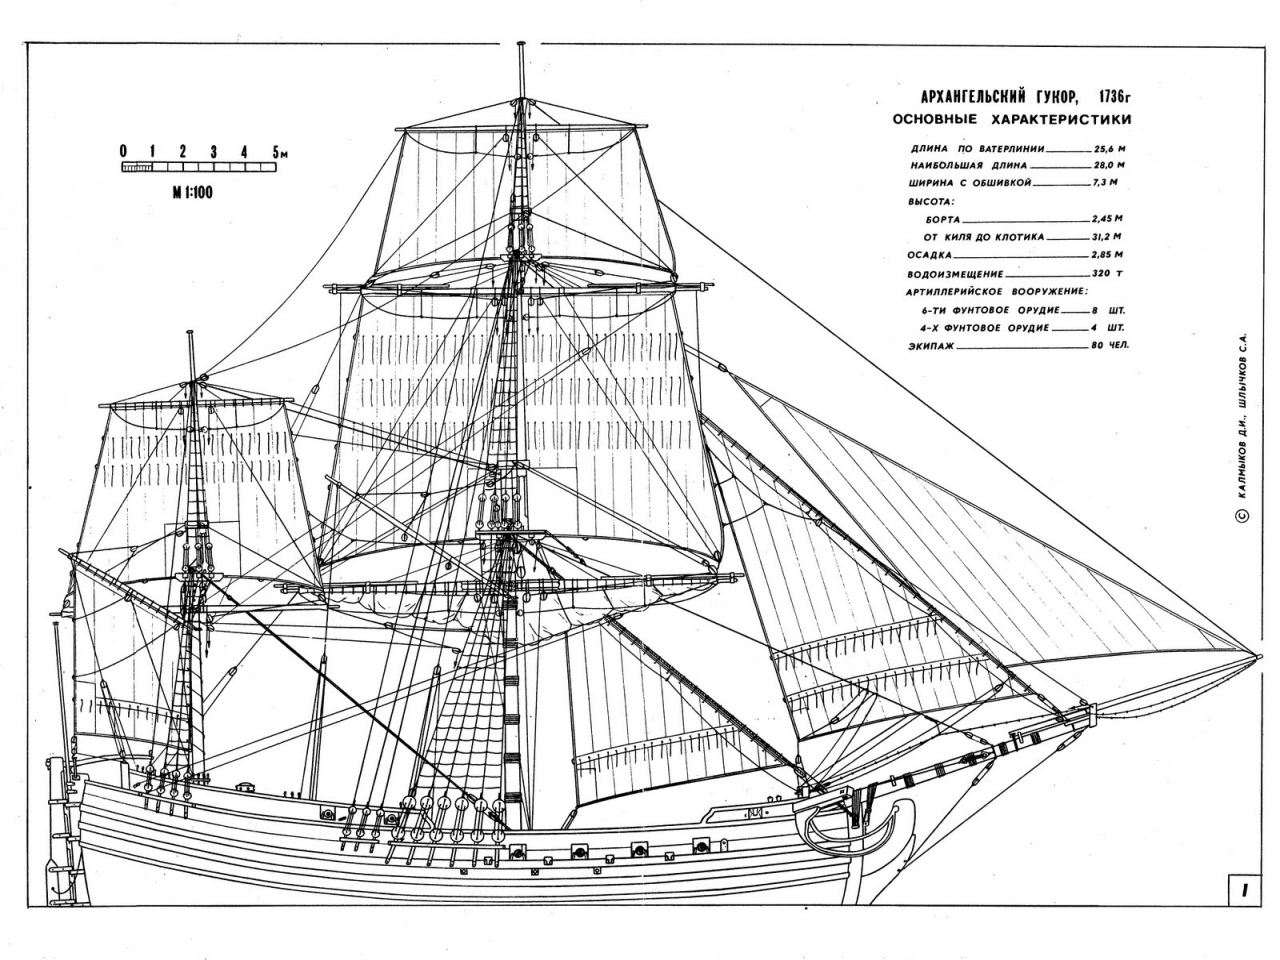 uss constitution rigging diagram detailed of the ear free model ship building plans